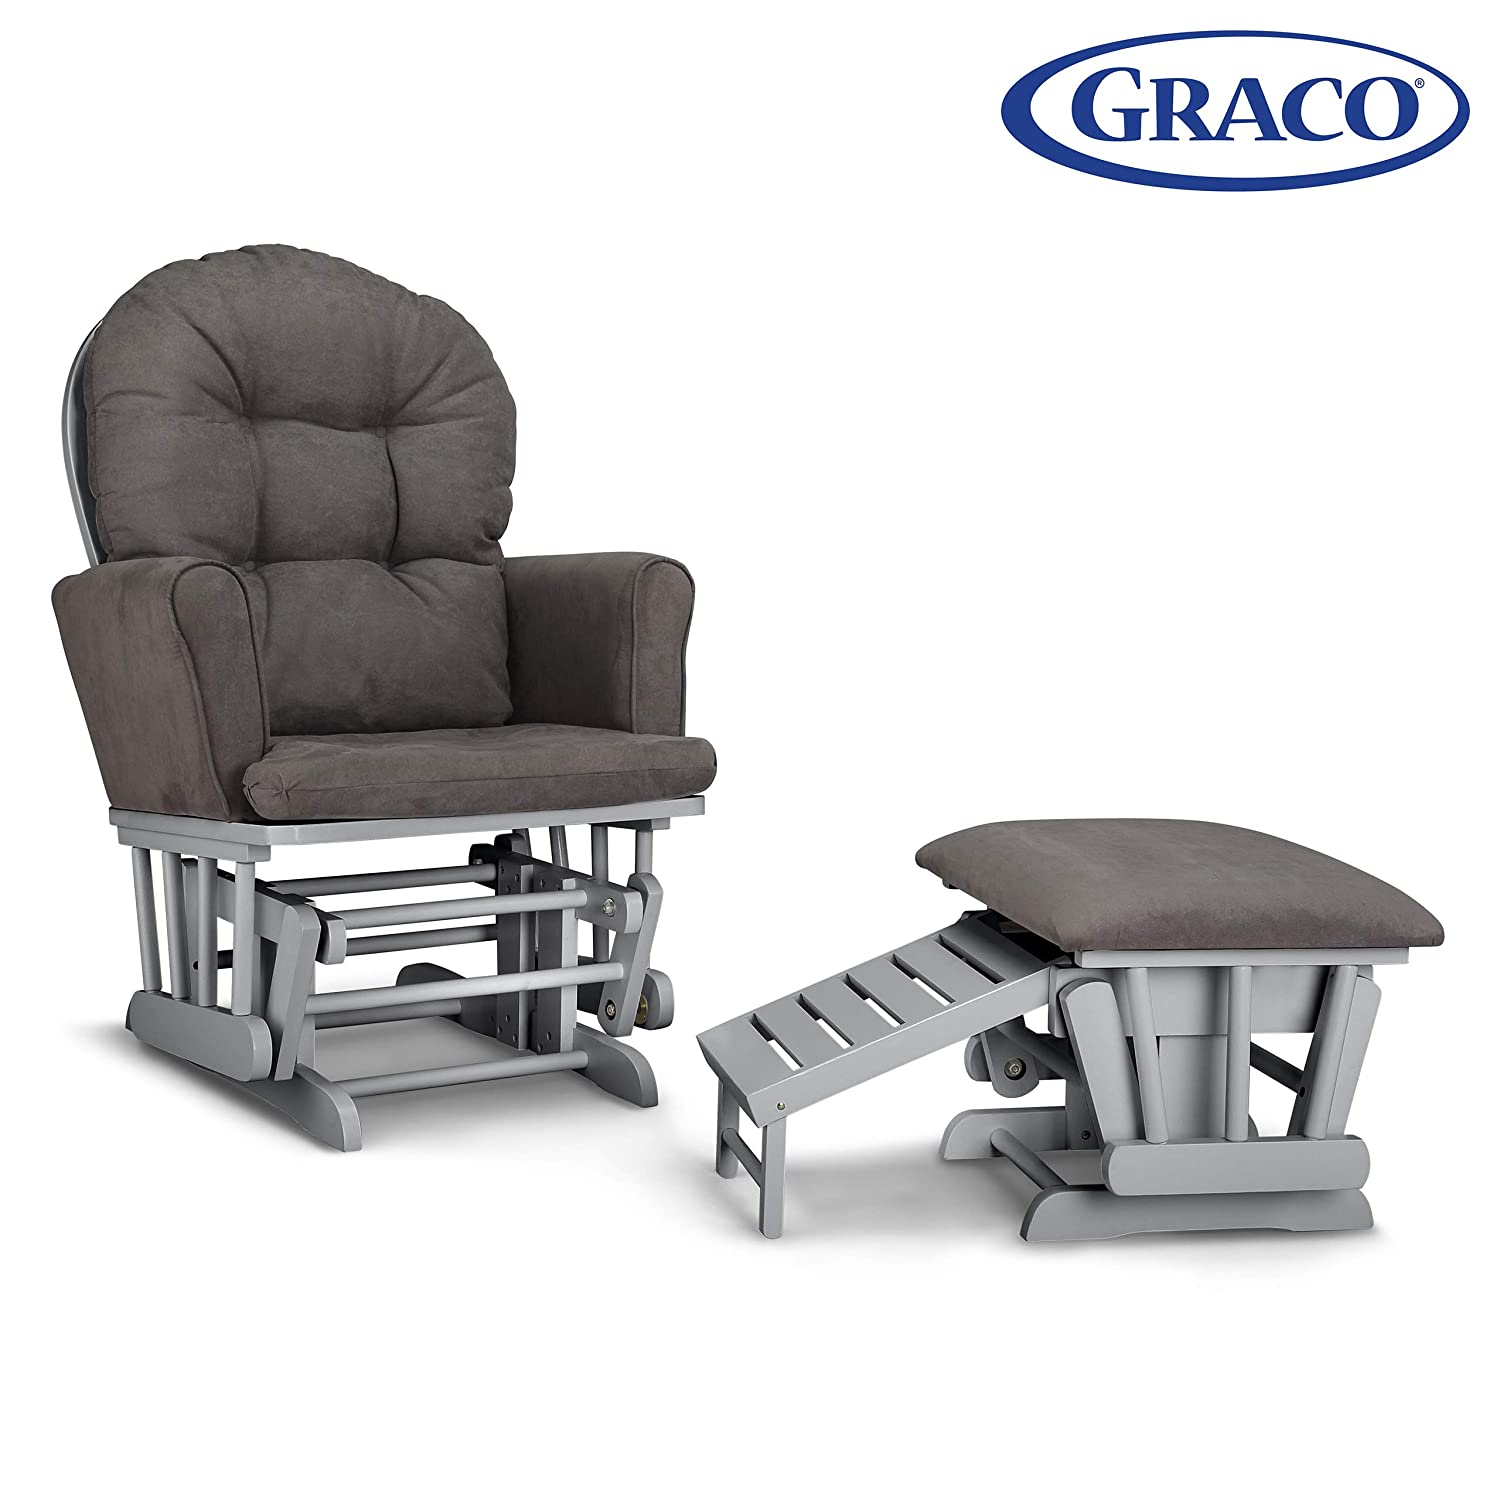 Strange Graco Parker Semi Upholstered Glider And Nursing Ottoman White Gray Cleanable Upholstered Comfort Rocking Nursery Chair With Ottoman Gmtry Best Dining Table And Chair Ideas Images Gmtryco